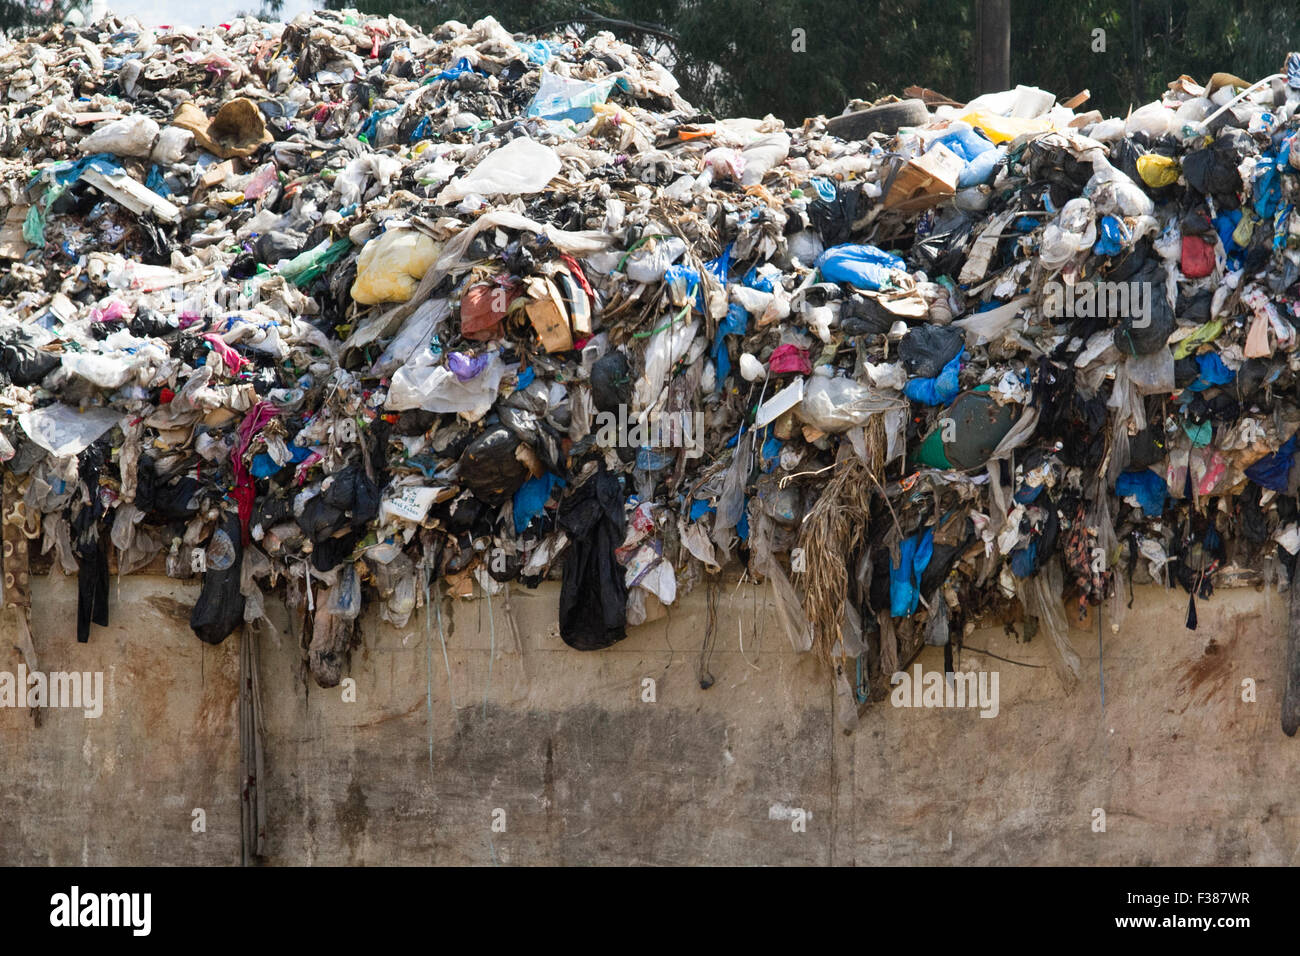 Beirut Lebanon. 1st October 2015. Beirut  local municipalities struggles to cope with the amount of rubbish waste - Stock Image